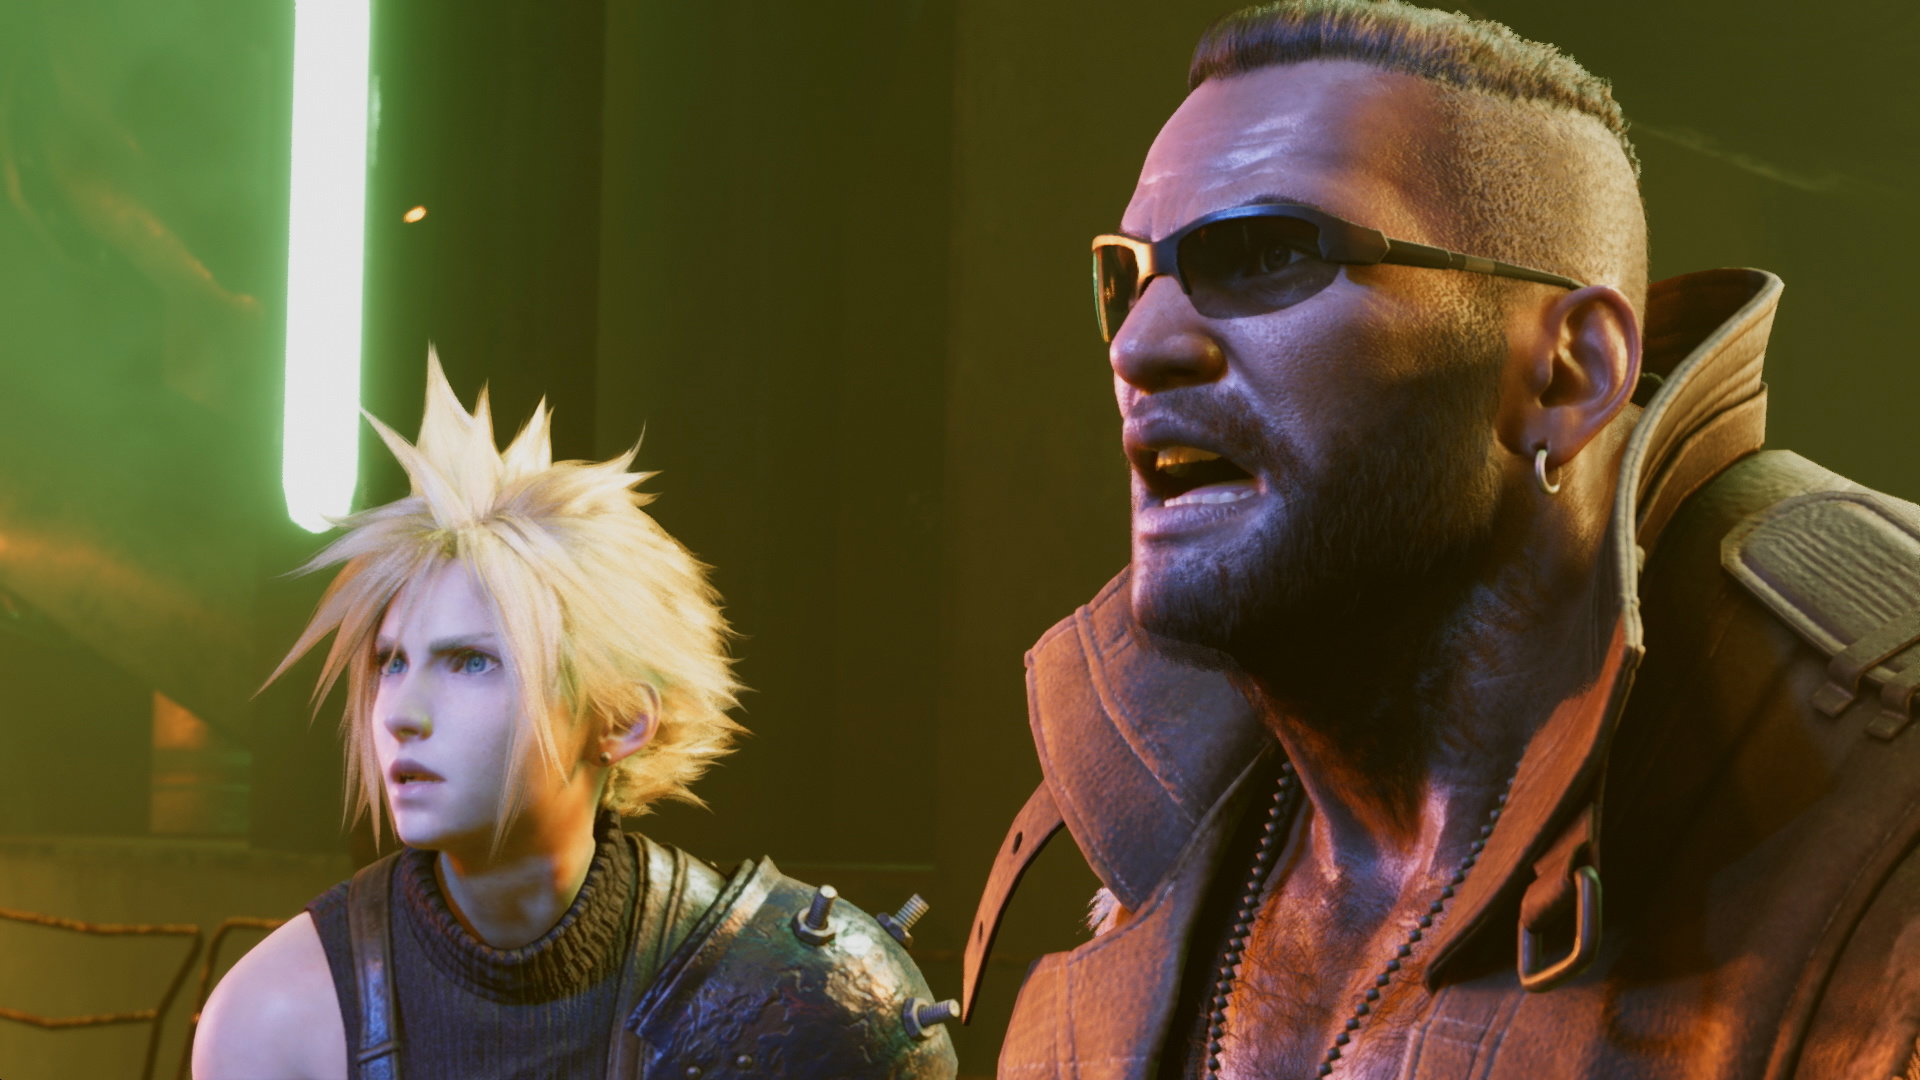 Final Fantasy VII Remake Remade in Dreams on PS4